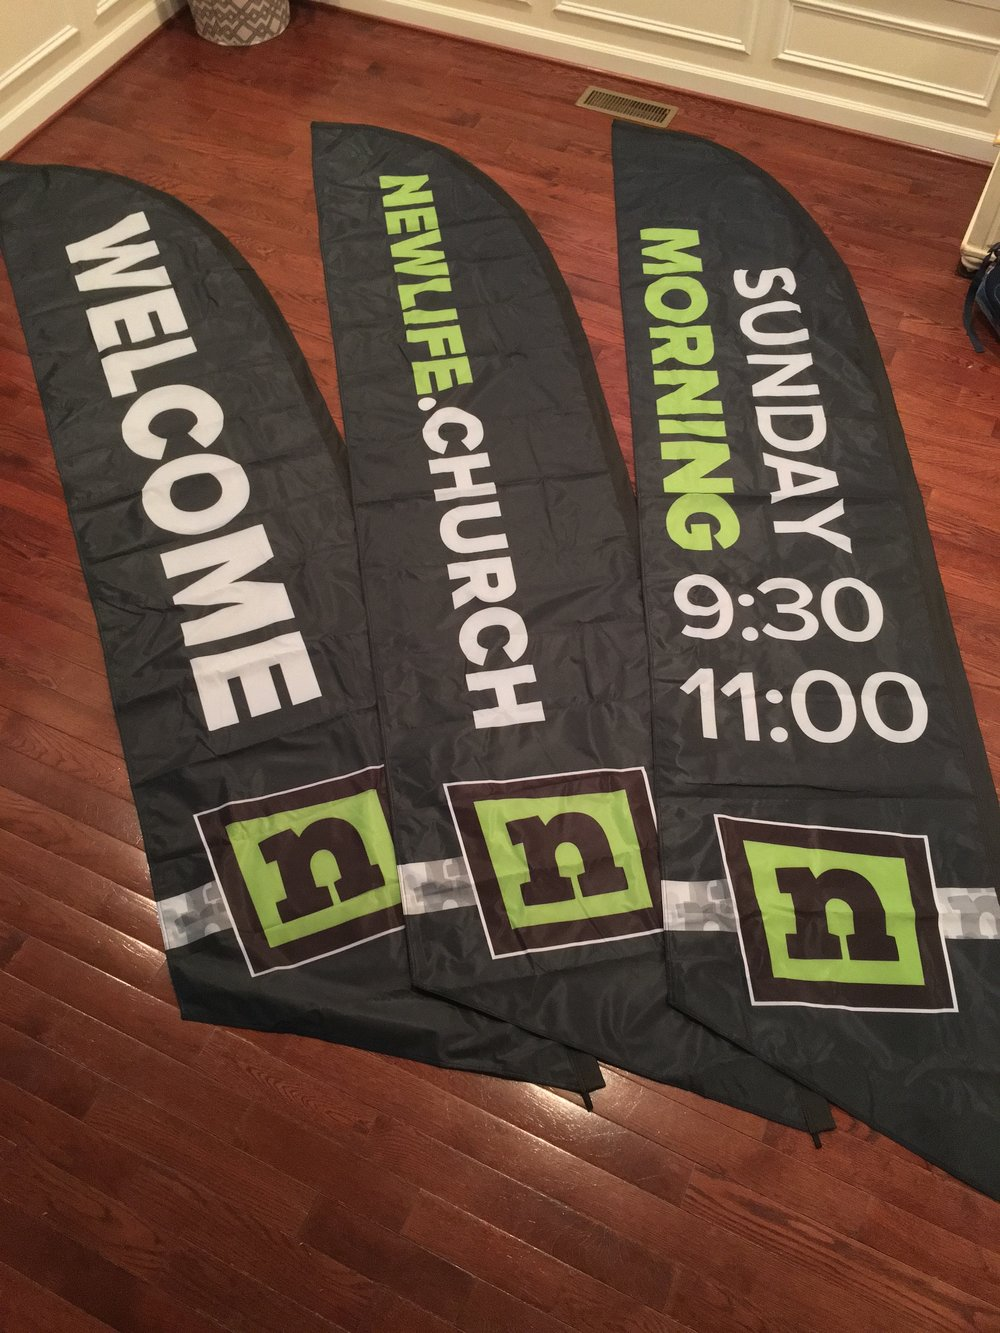 14' flag banners Ben created for the Linton Hall Campus.